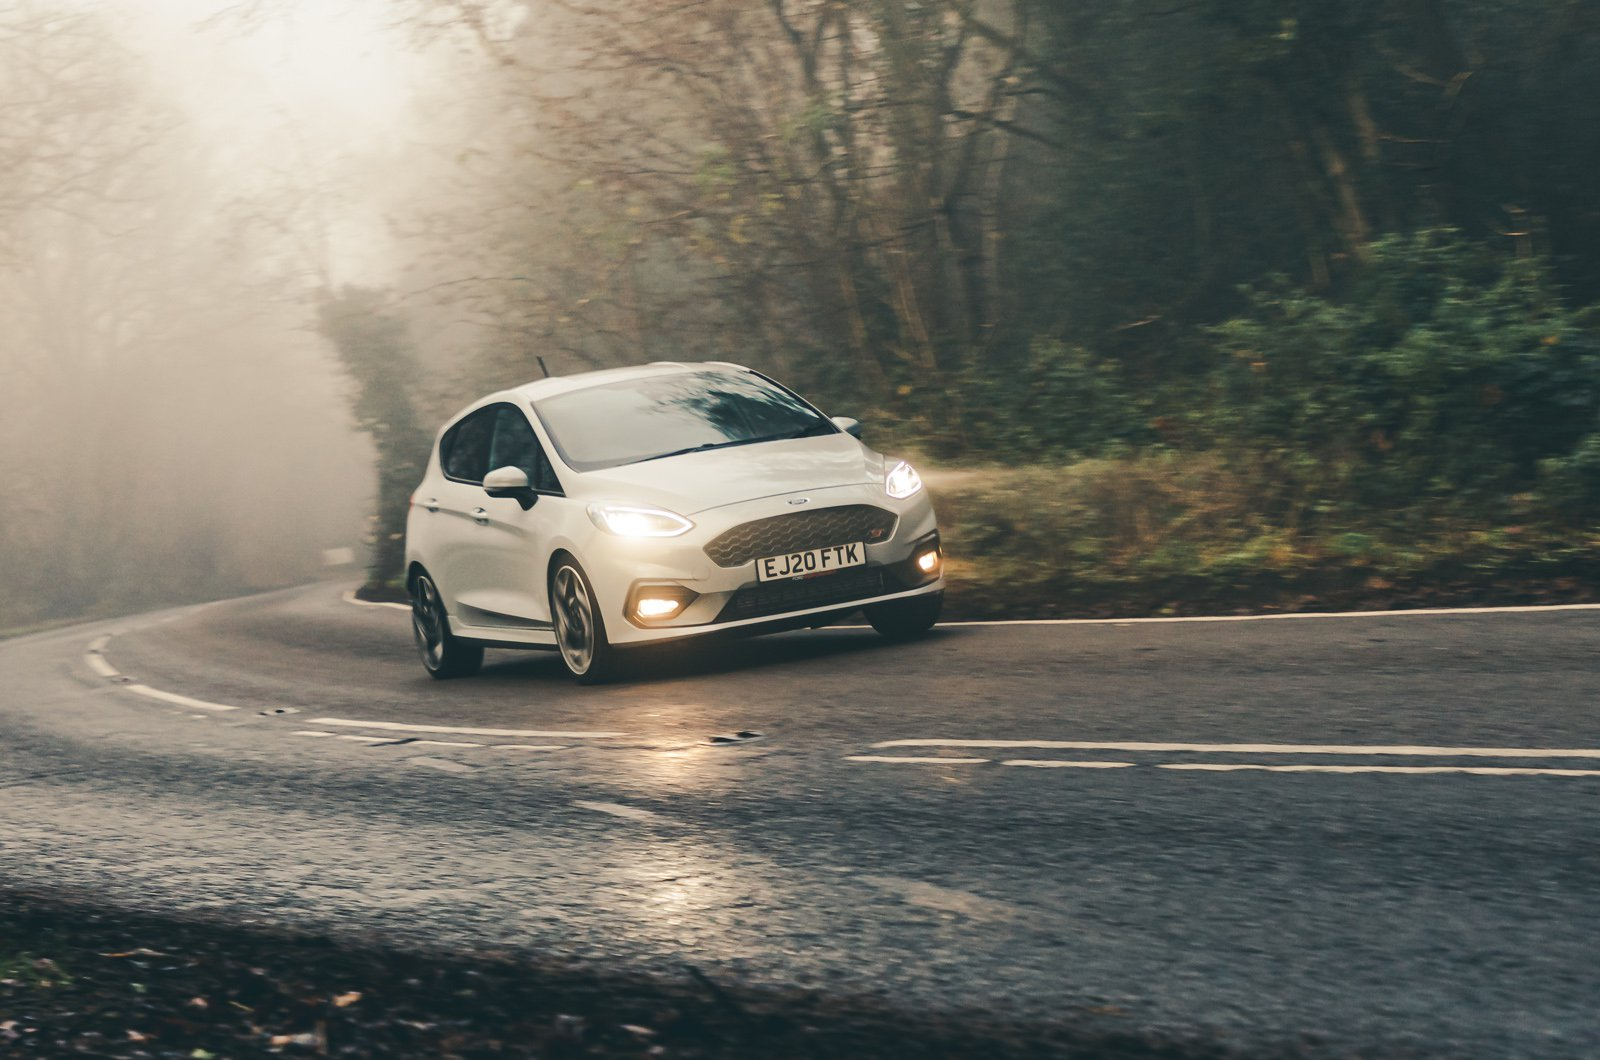 Fiesta ST long-term goodbye 4